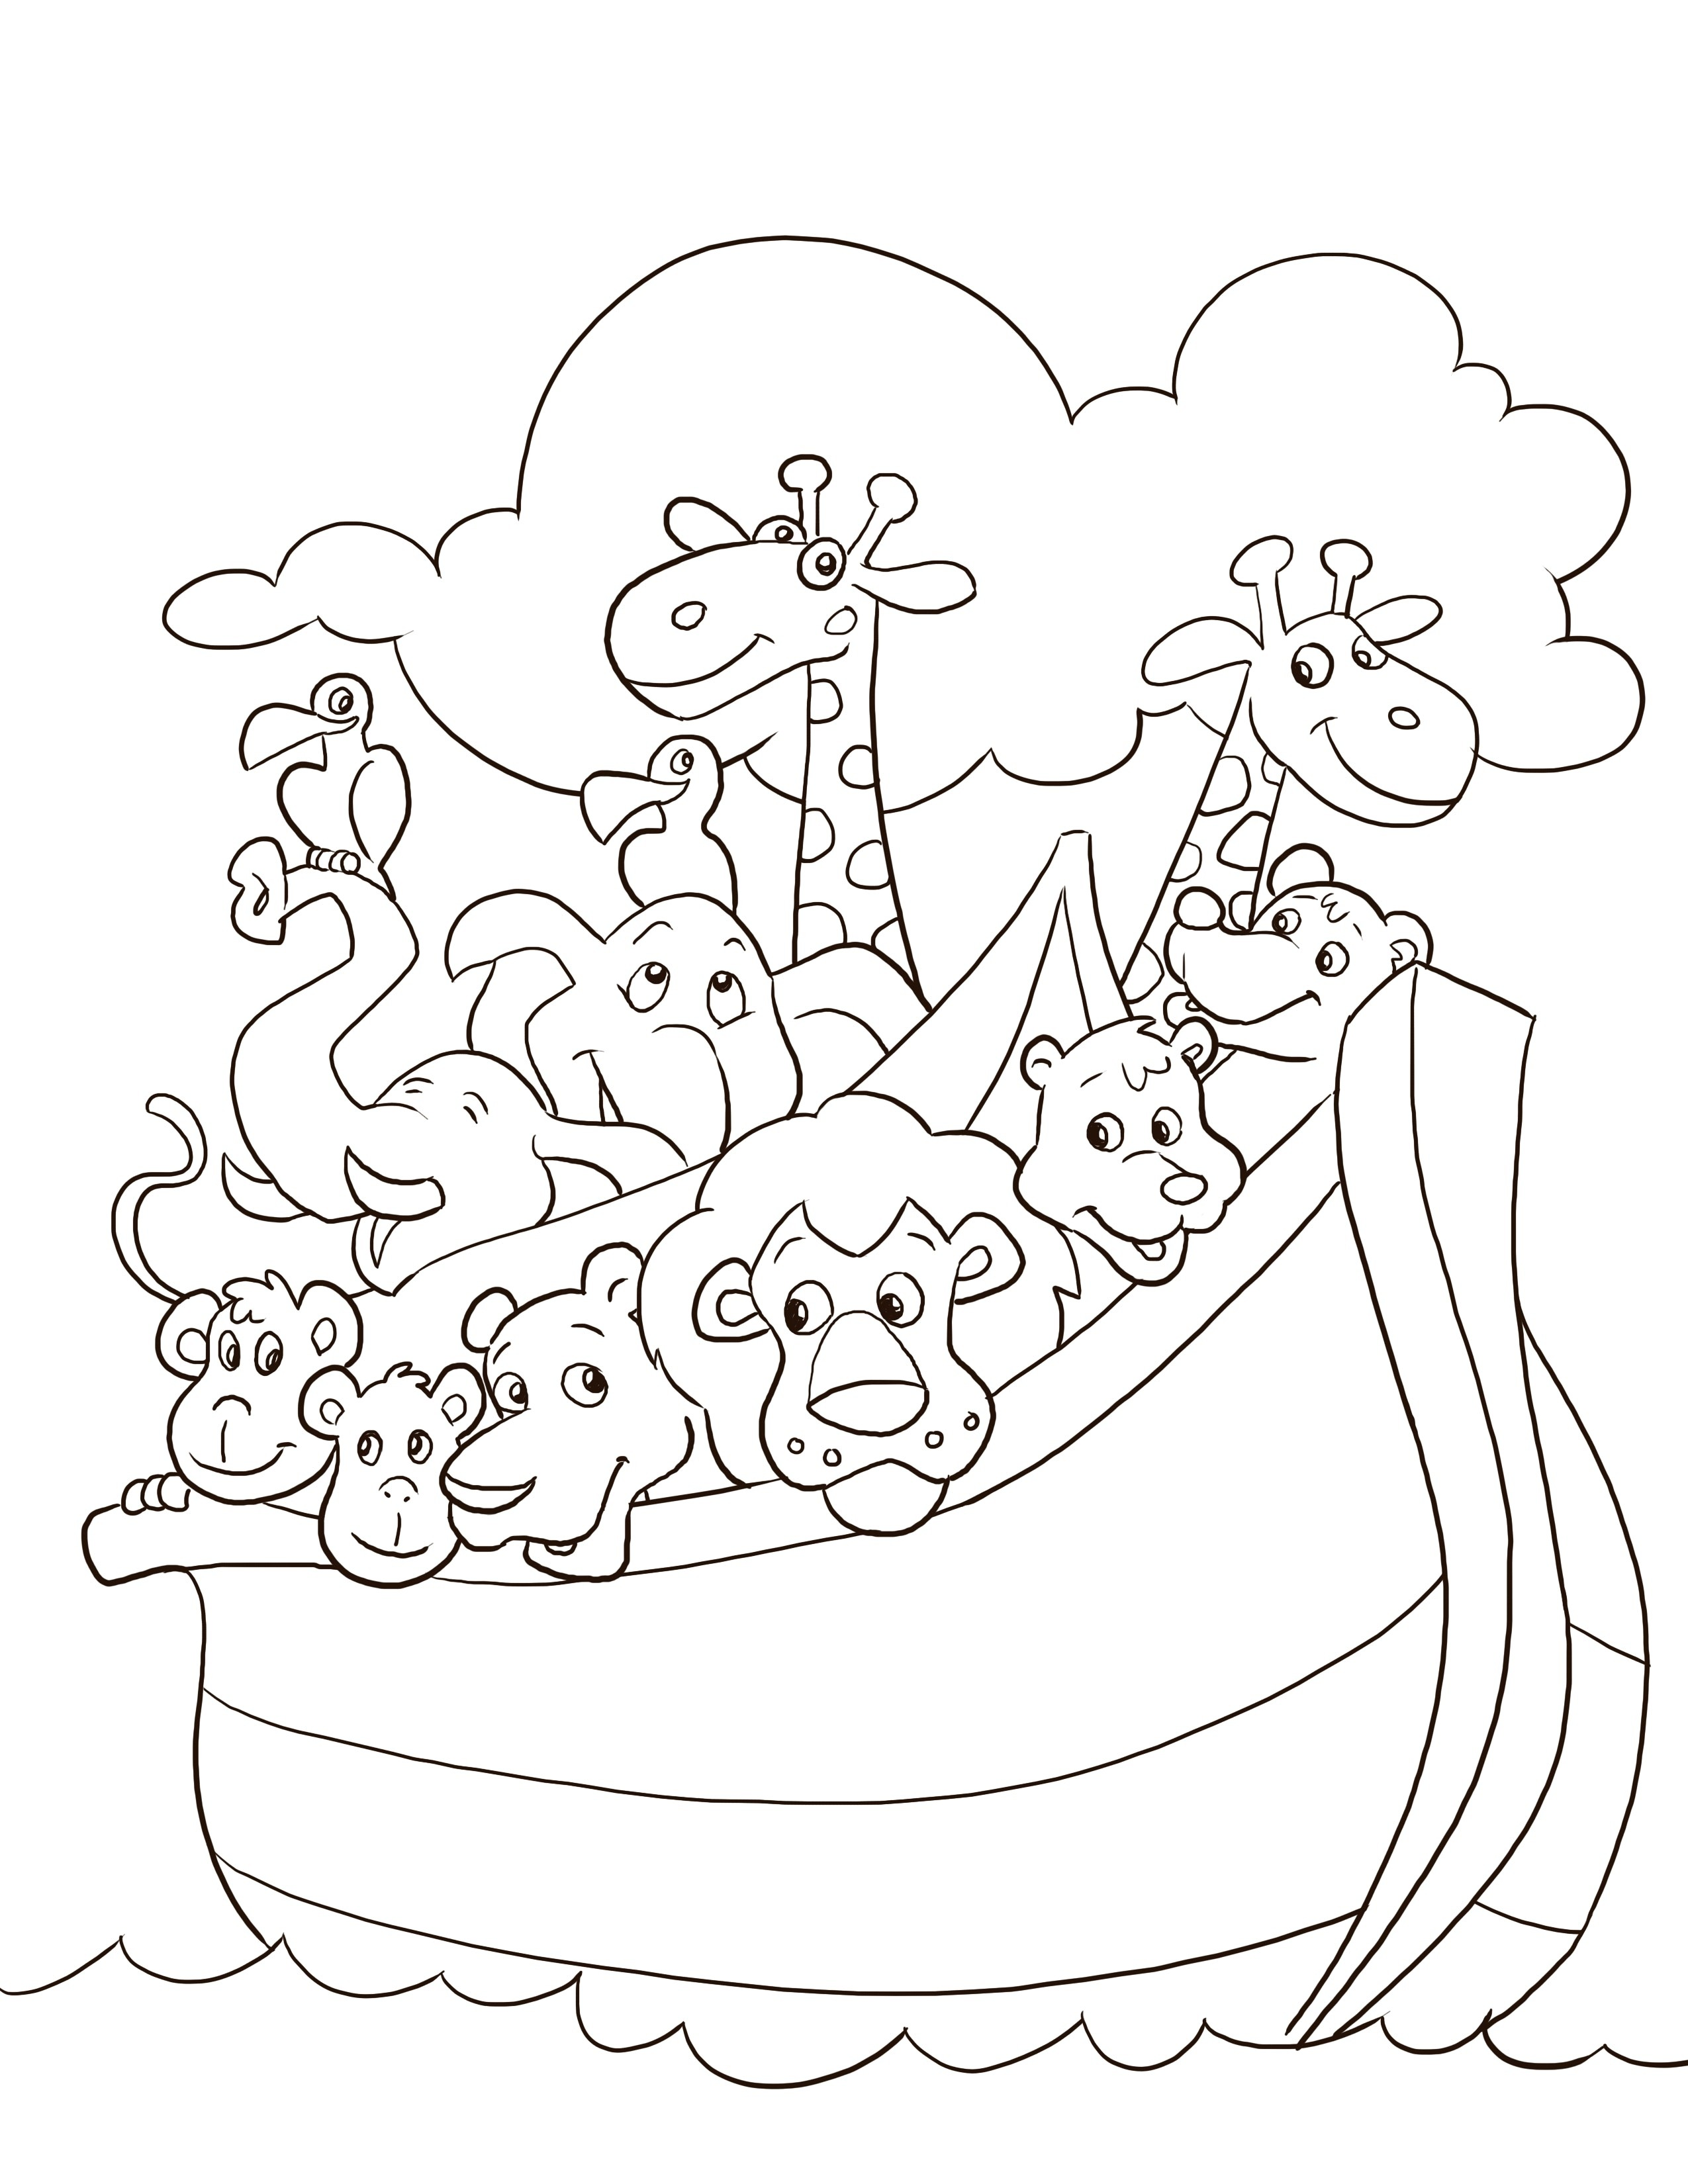 2550x3300 Coloring Pages For Sunday School Preschool New Free Preschoolers